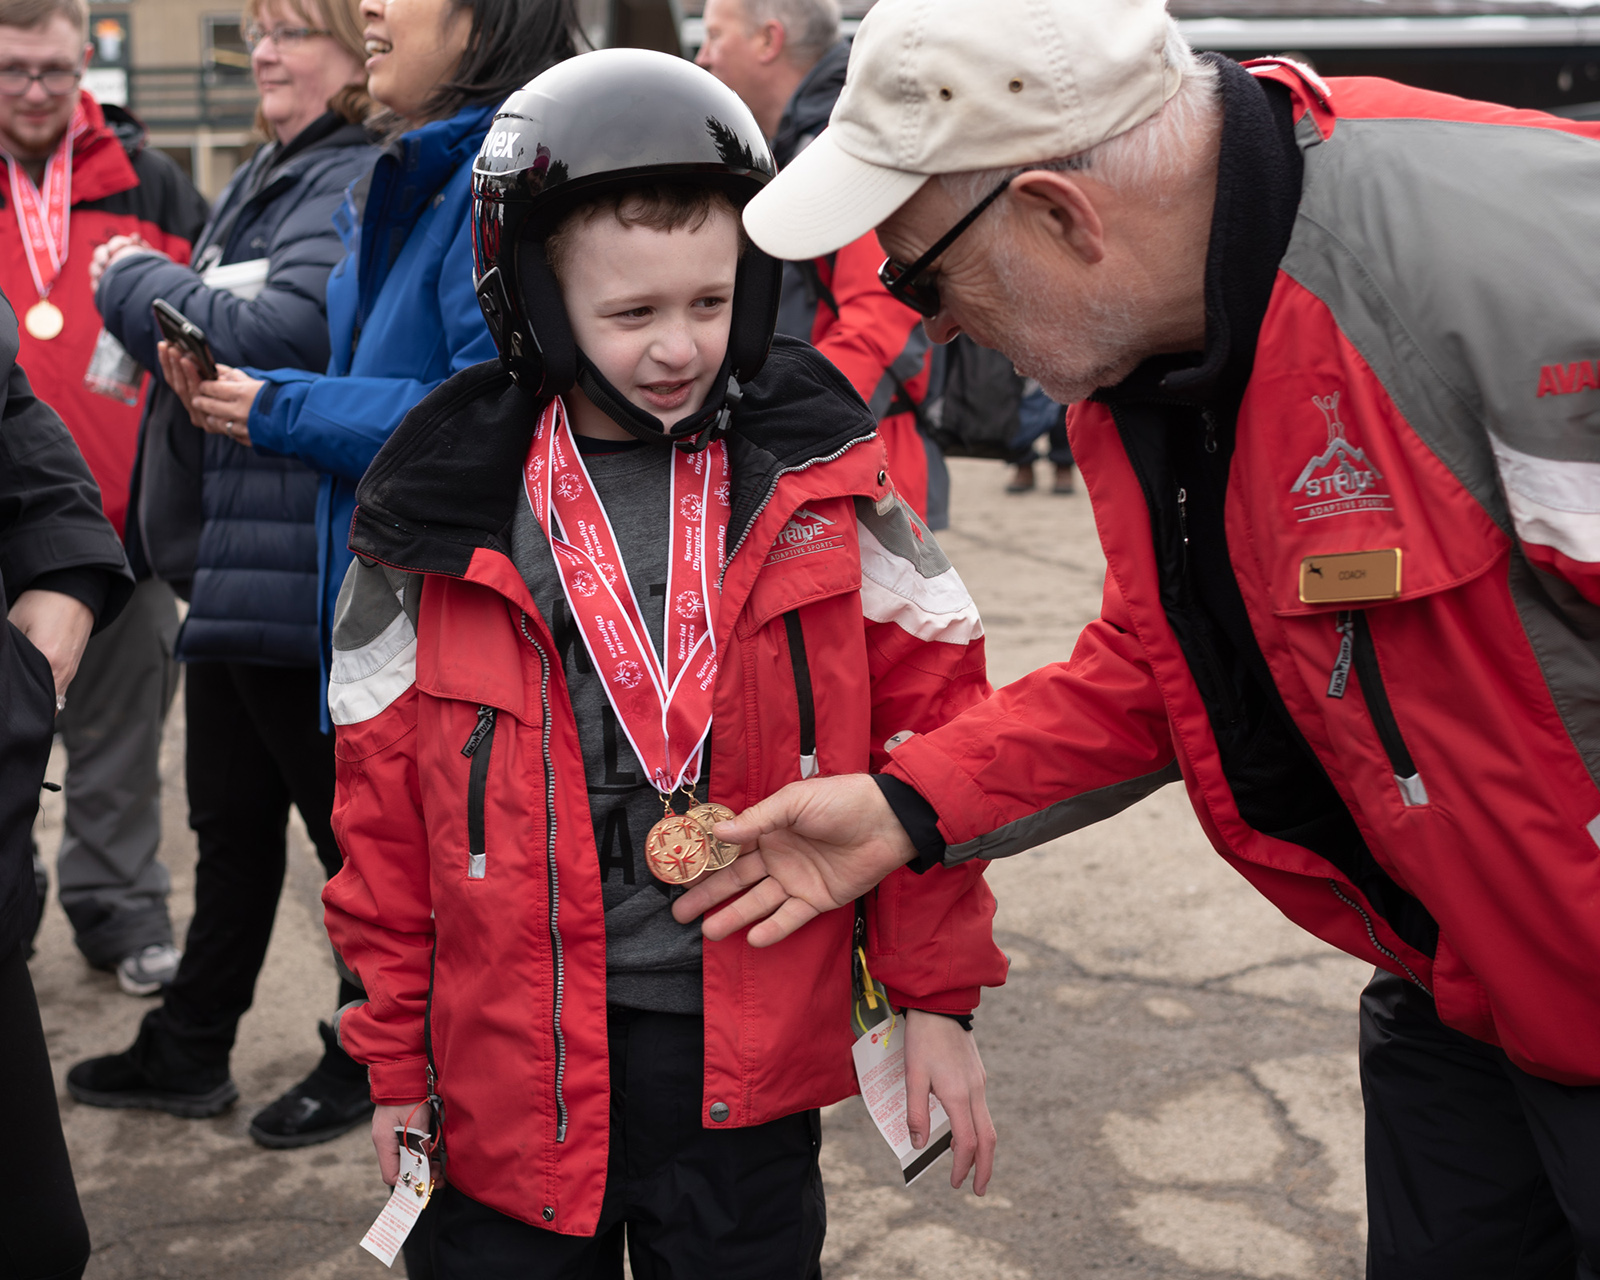 Coach, Marcel Chaine, congratulates Matthew Duffy on his metals for alpine skiing.